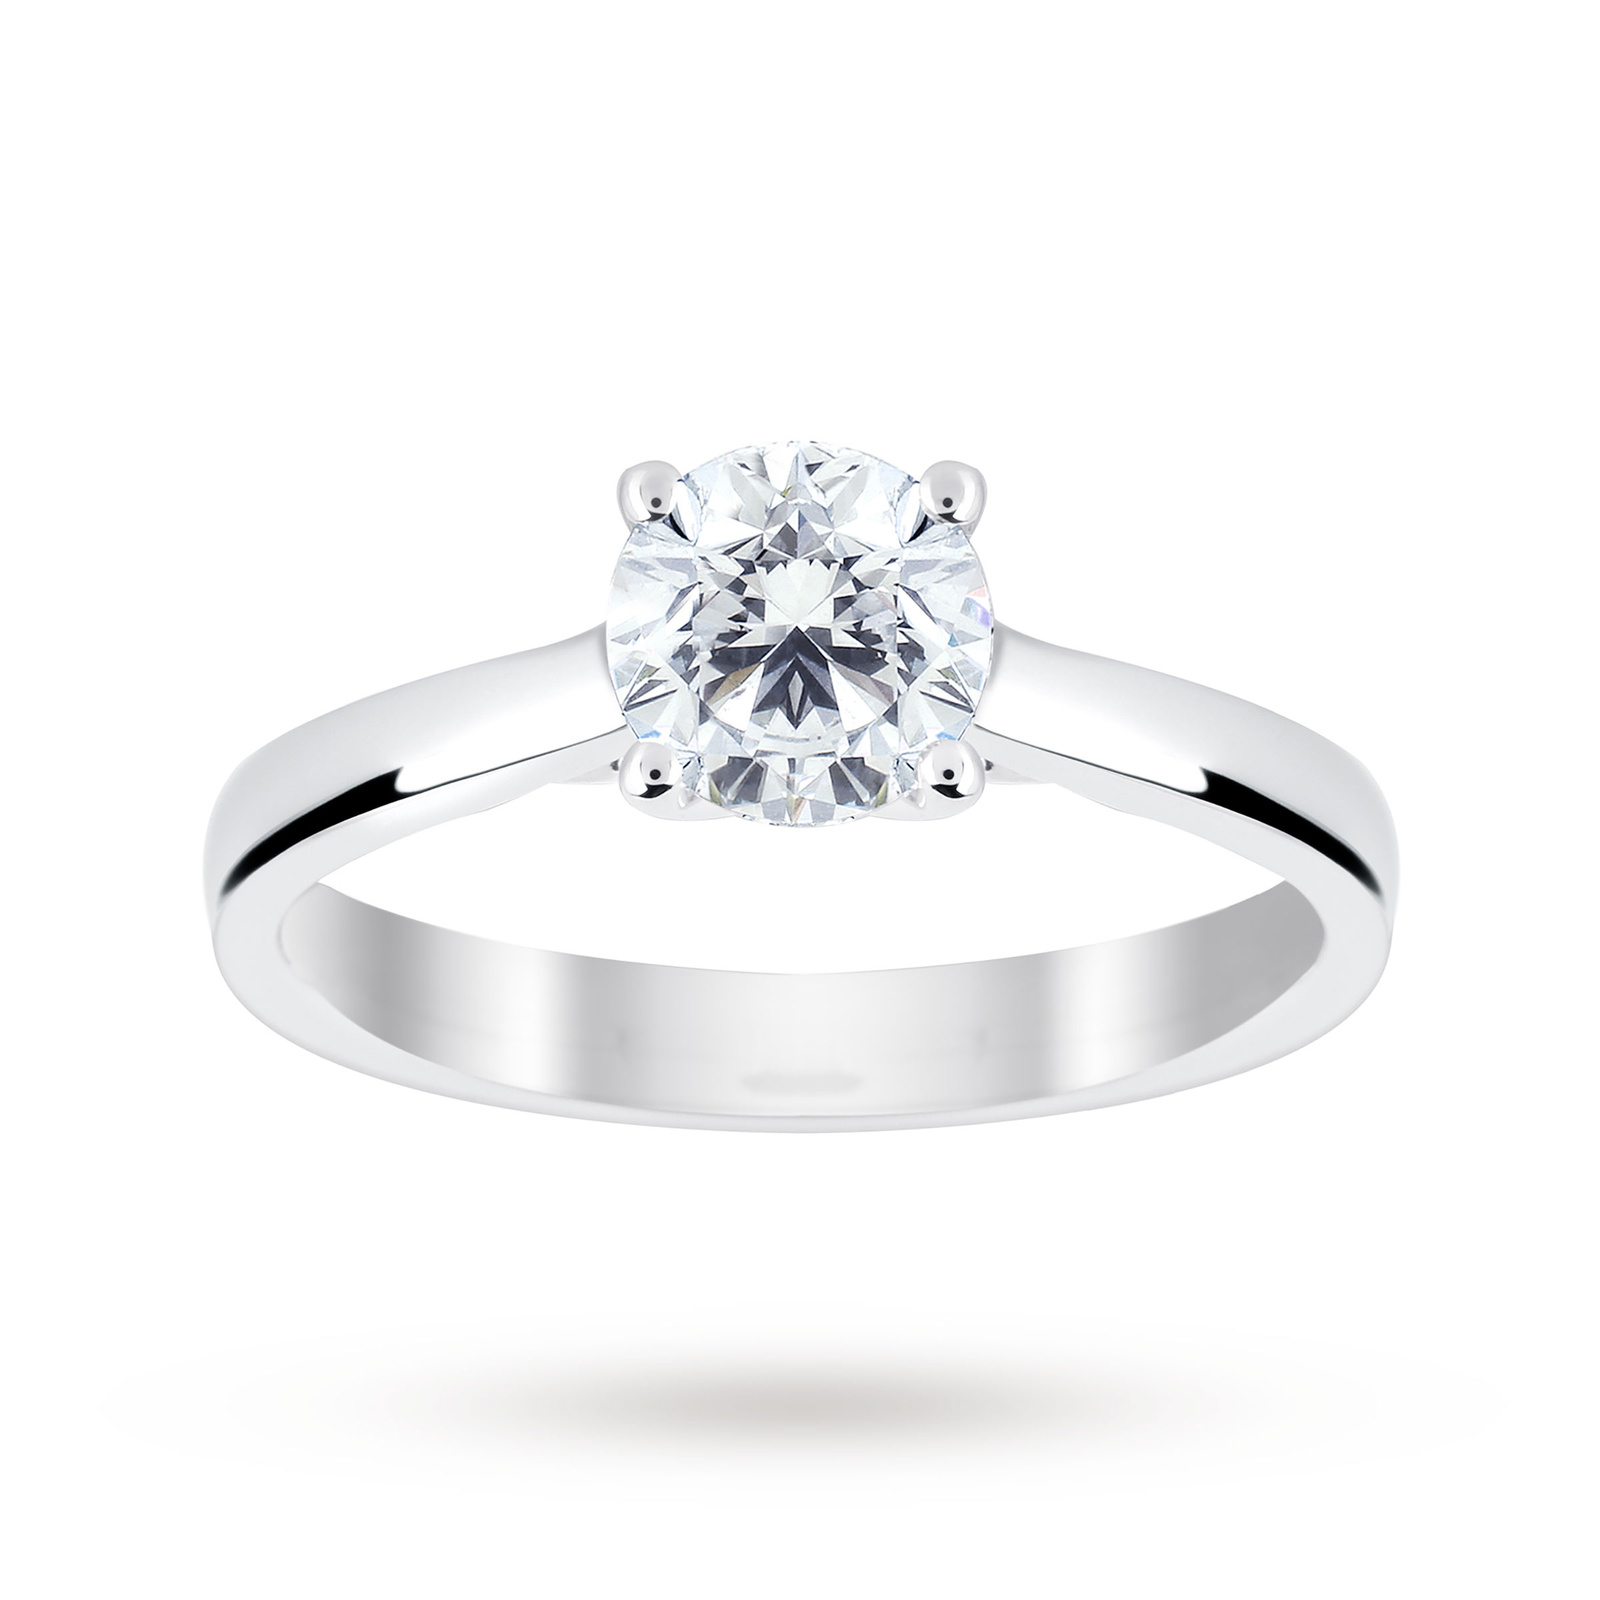 Platinum 1.00 Carat Diamond Solitaire Ring - Ring Size J